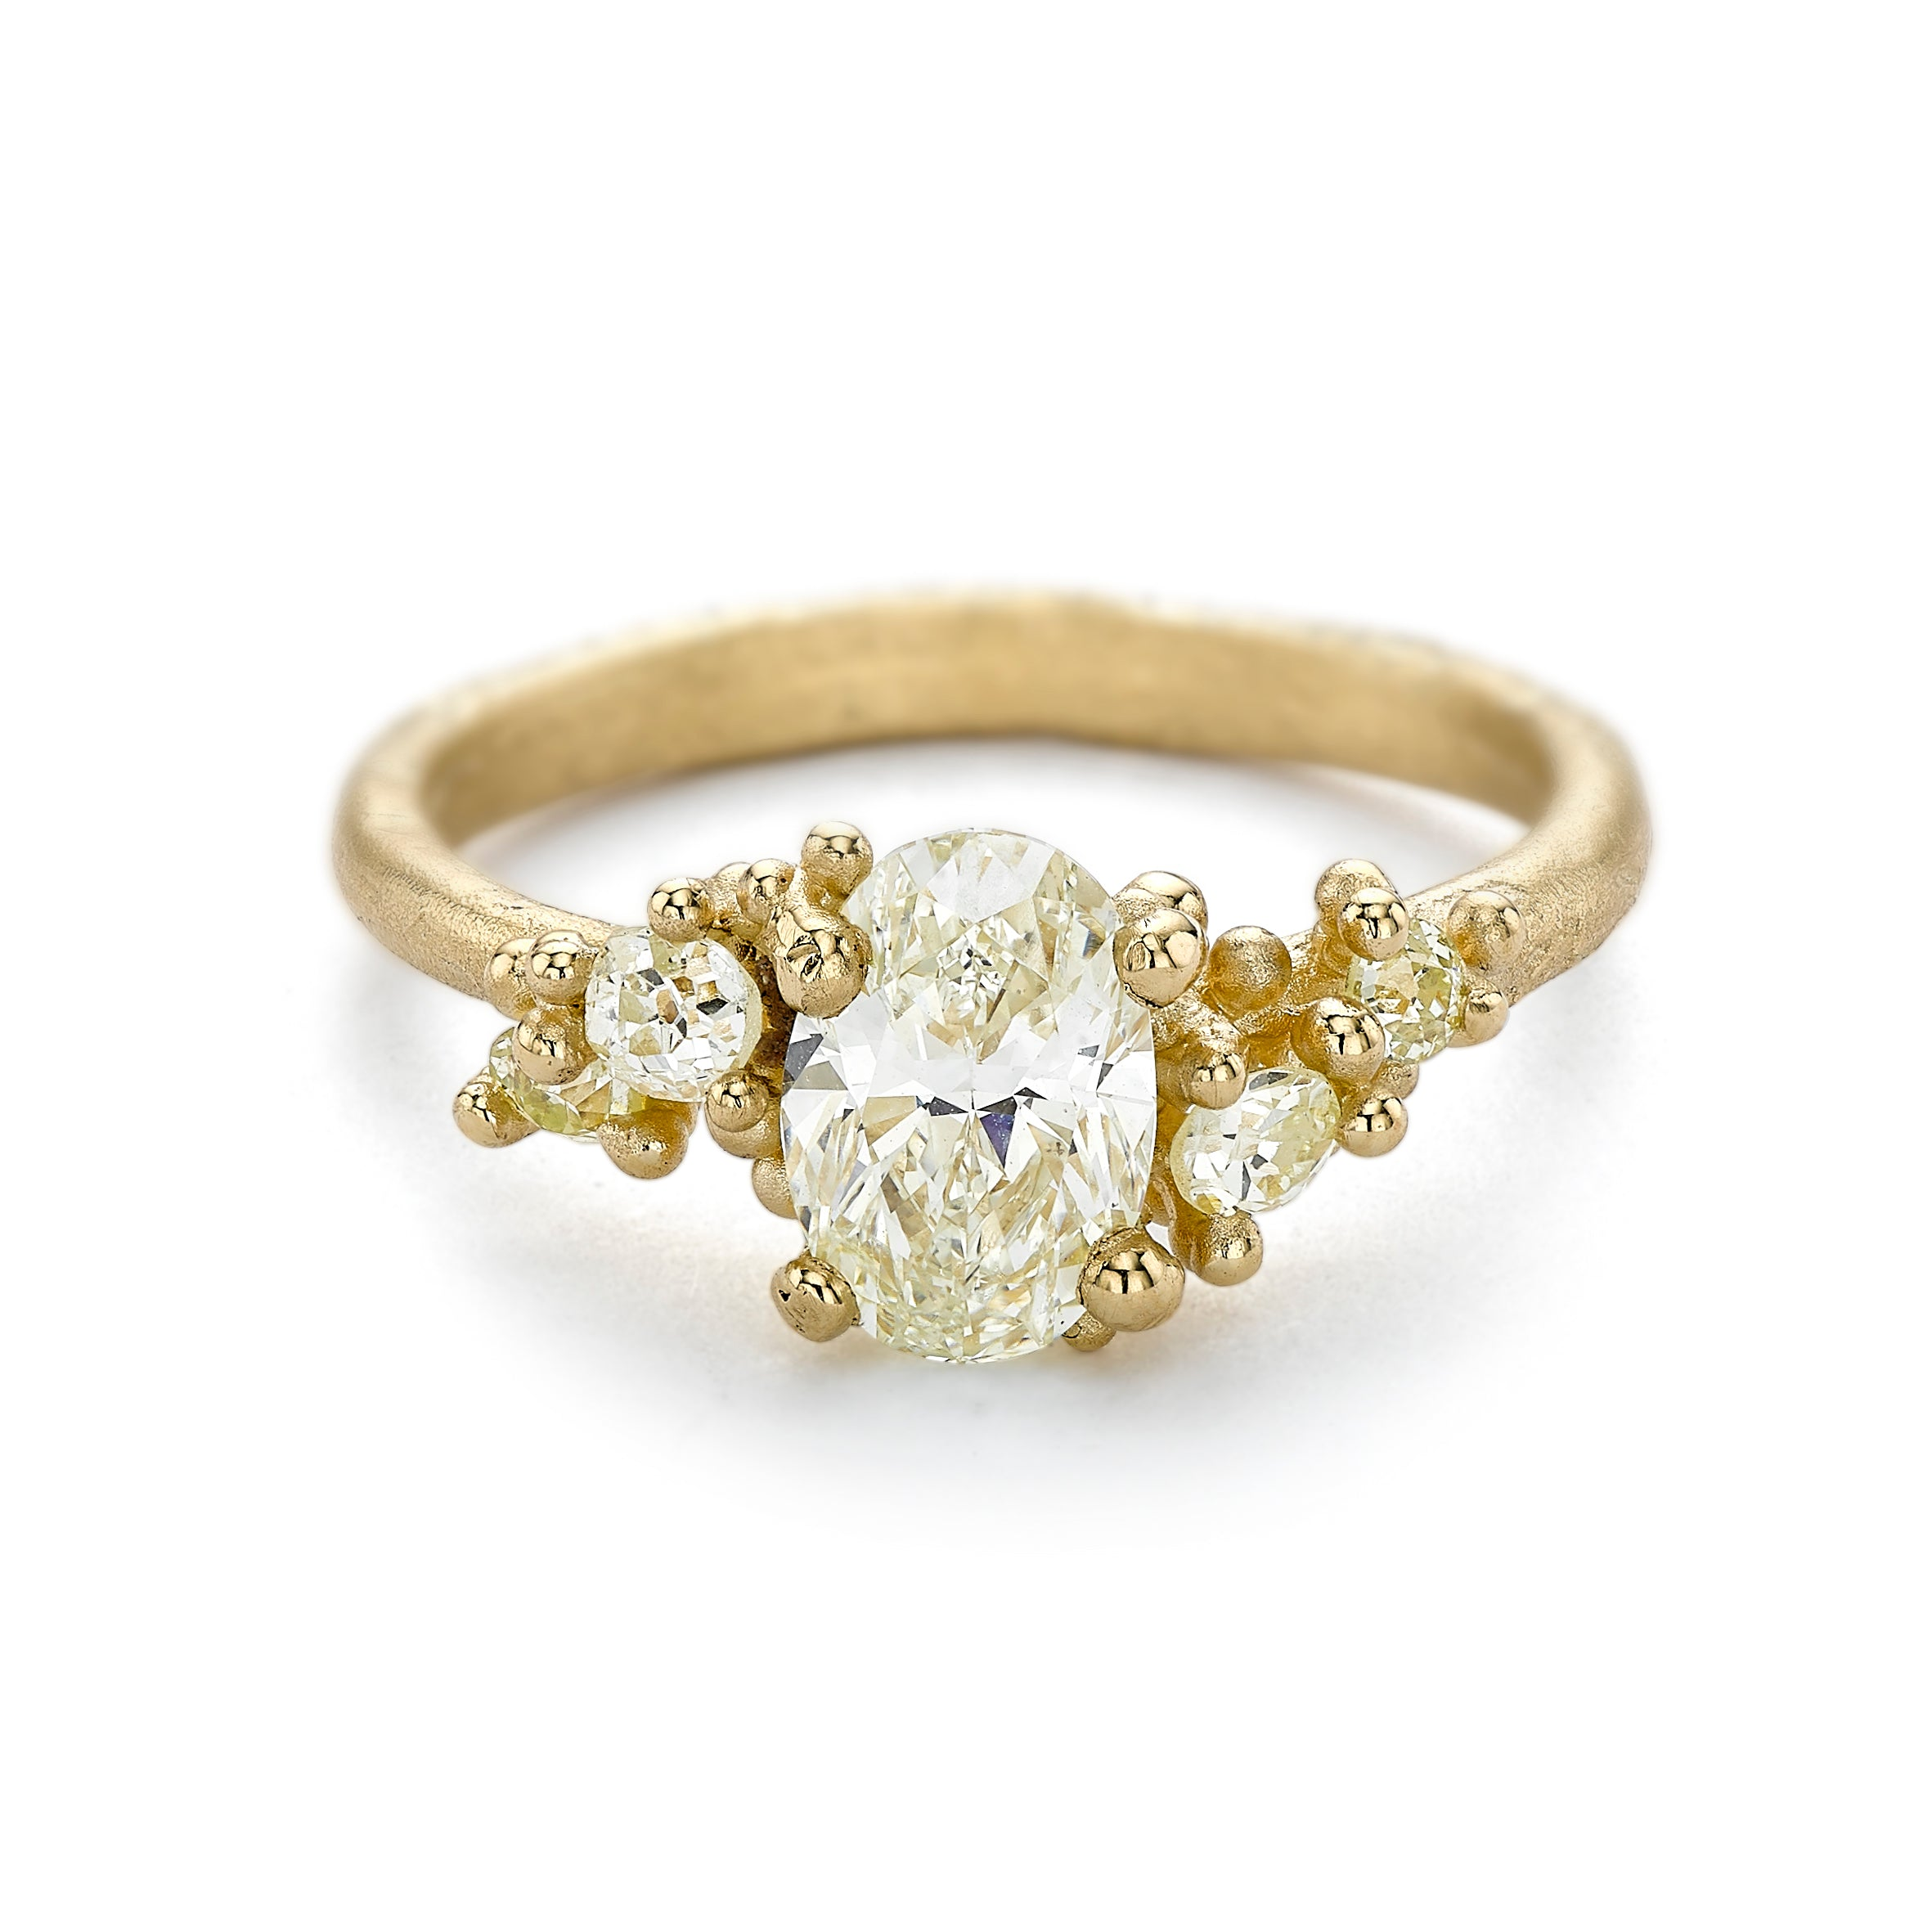 Antique Yellow Diamond Encrusted Ring by Ruth Tomlinson, handcrafted in London